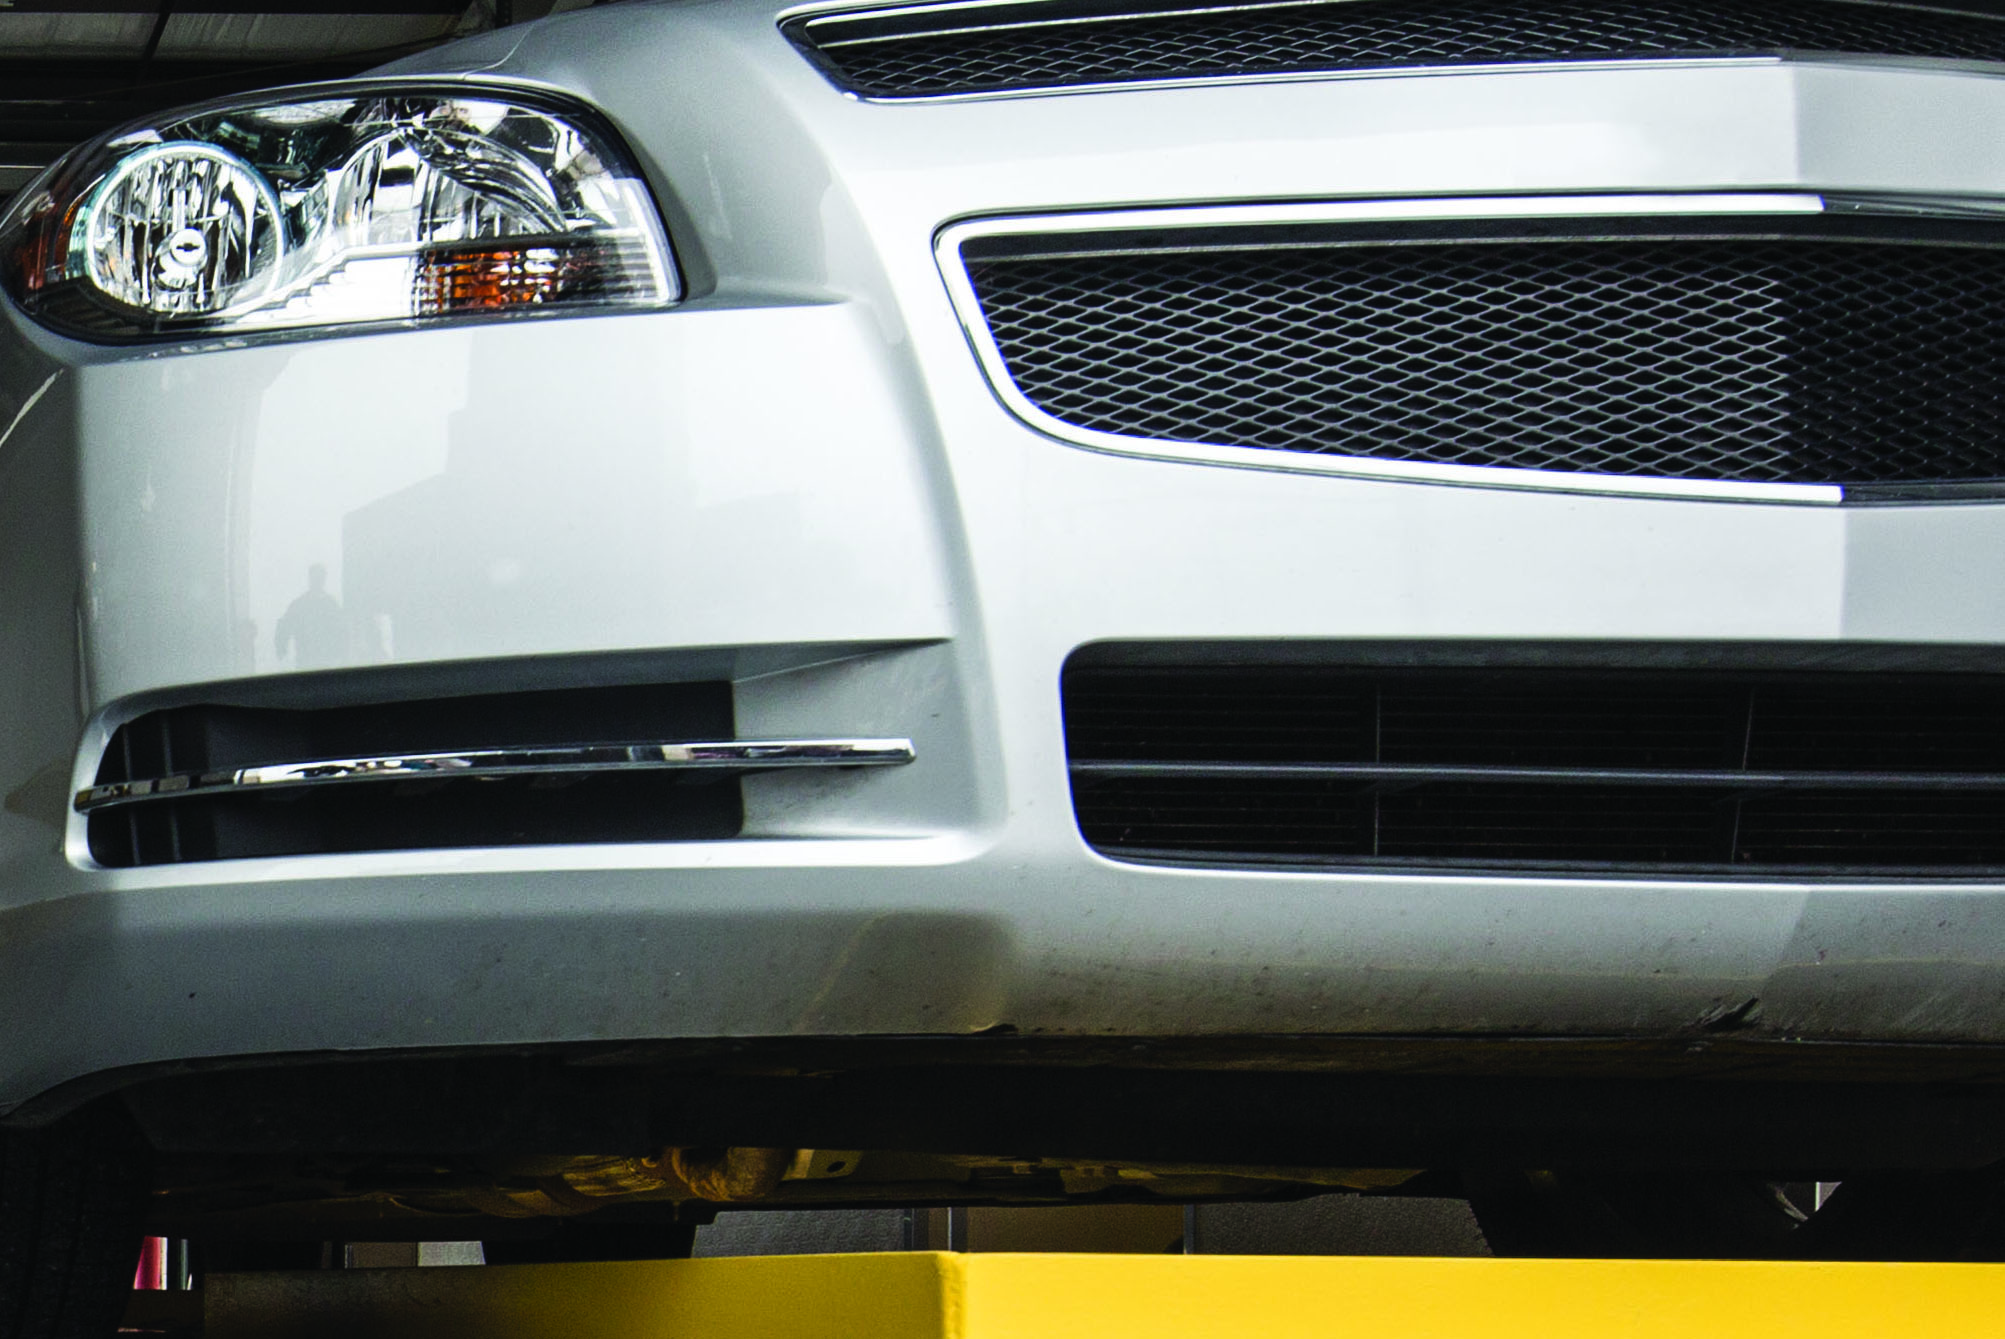 Guidance On Vehicle Recalls Looking Them Up And Follow Up